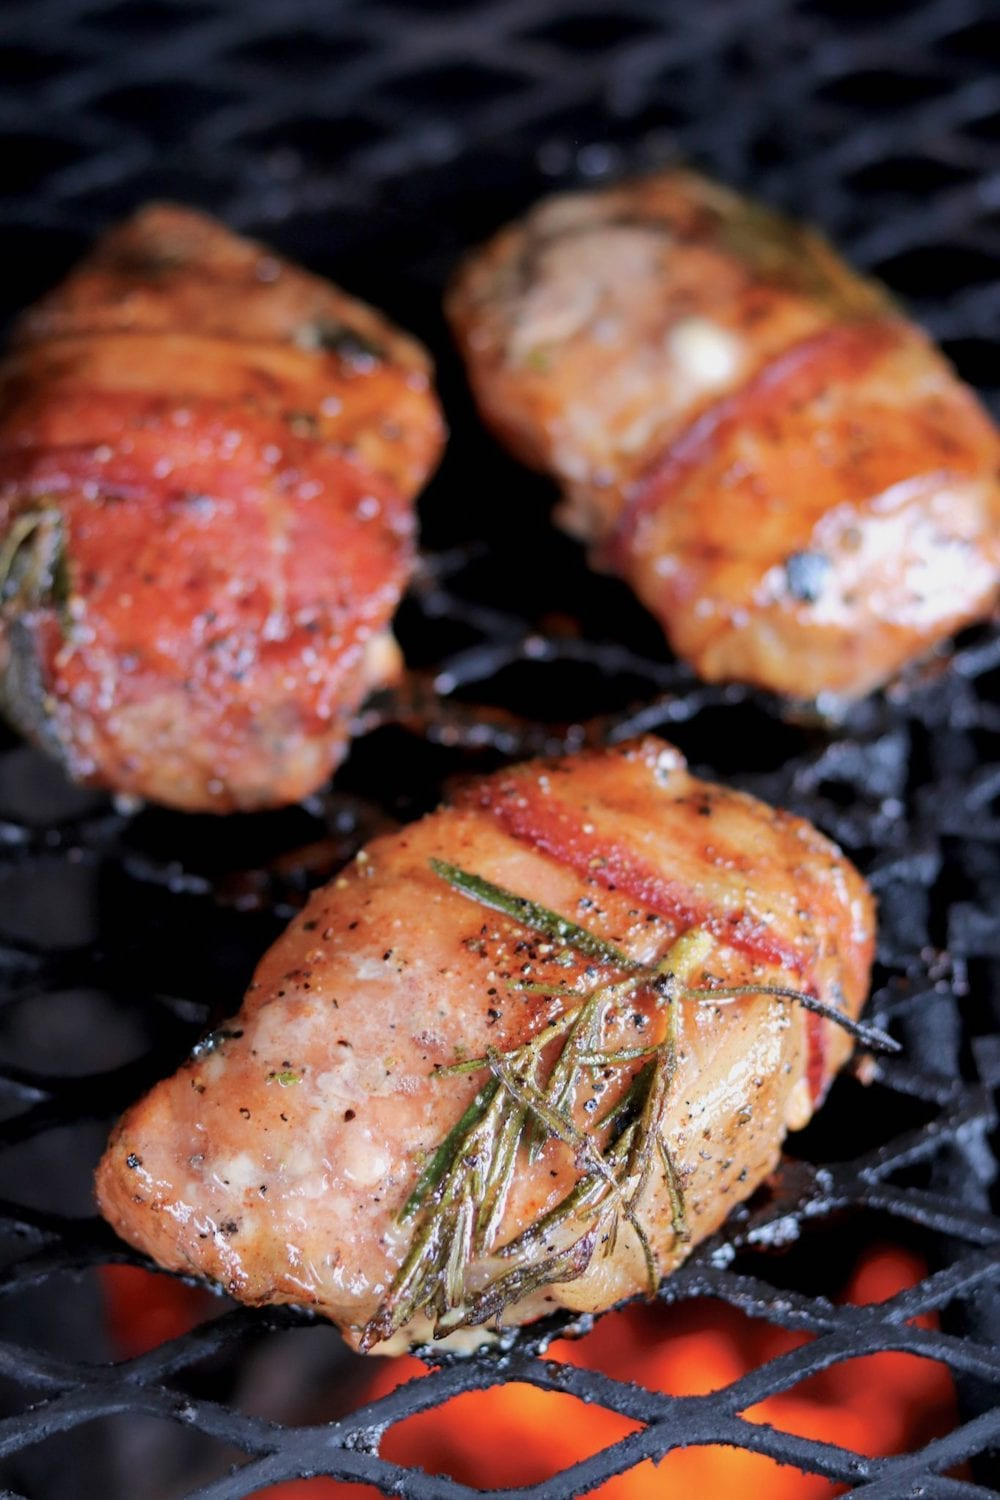 Pork chops on a grill with rosemary and bacon